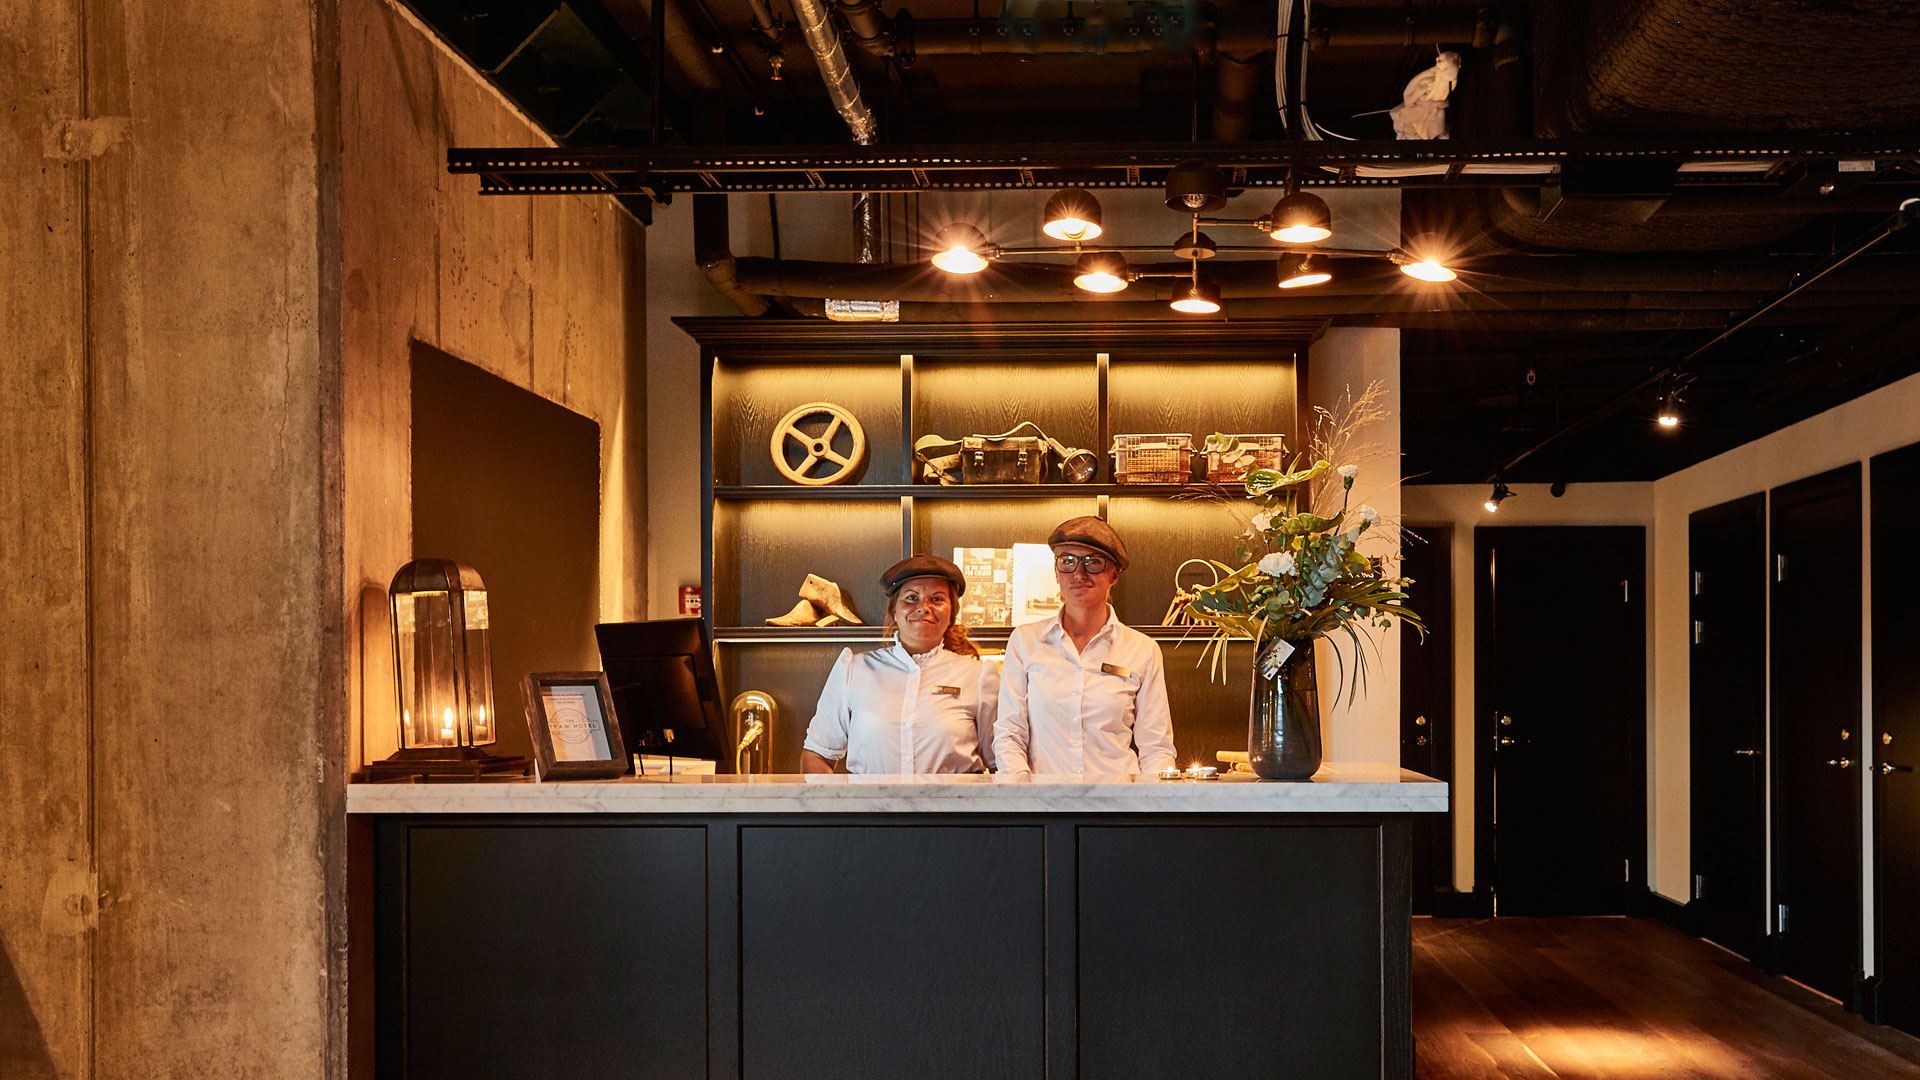 Our industrial lights enhance the industrial décor of The Steam Hotel, Sweden